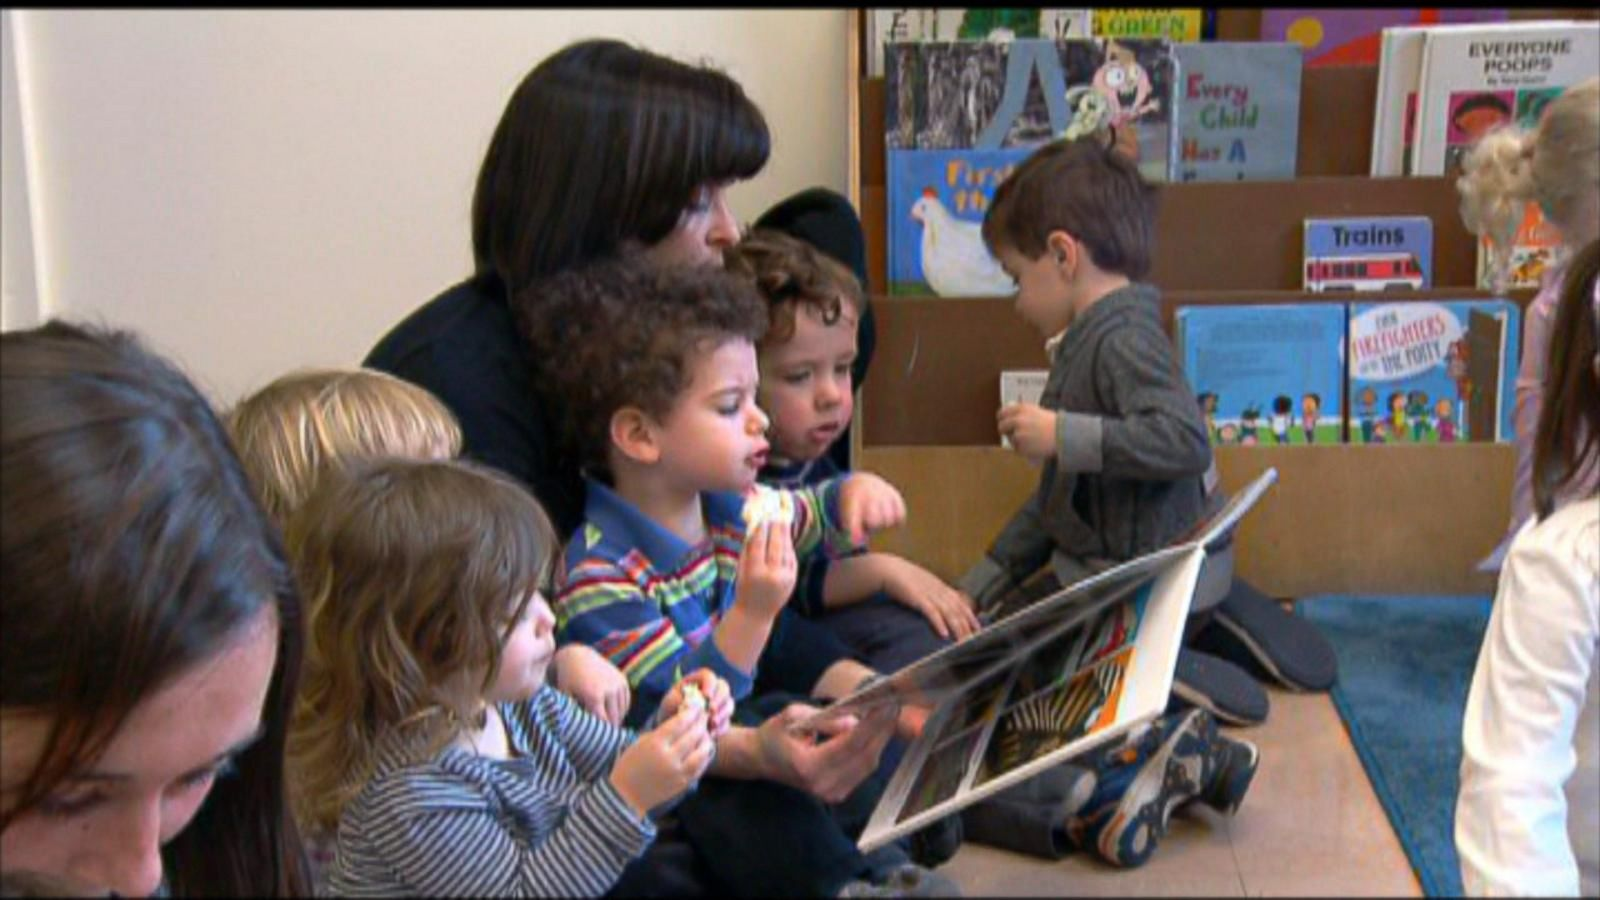 VIDEO: App to School: New Tech to Help Kids With Emotional Intelligence